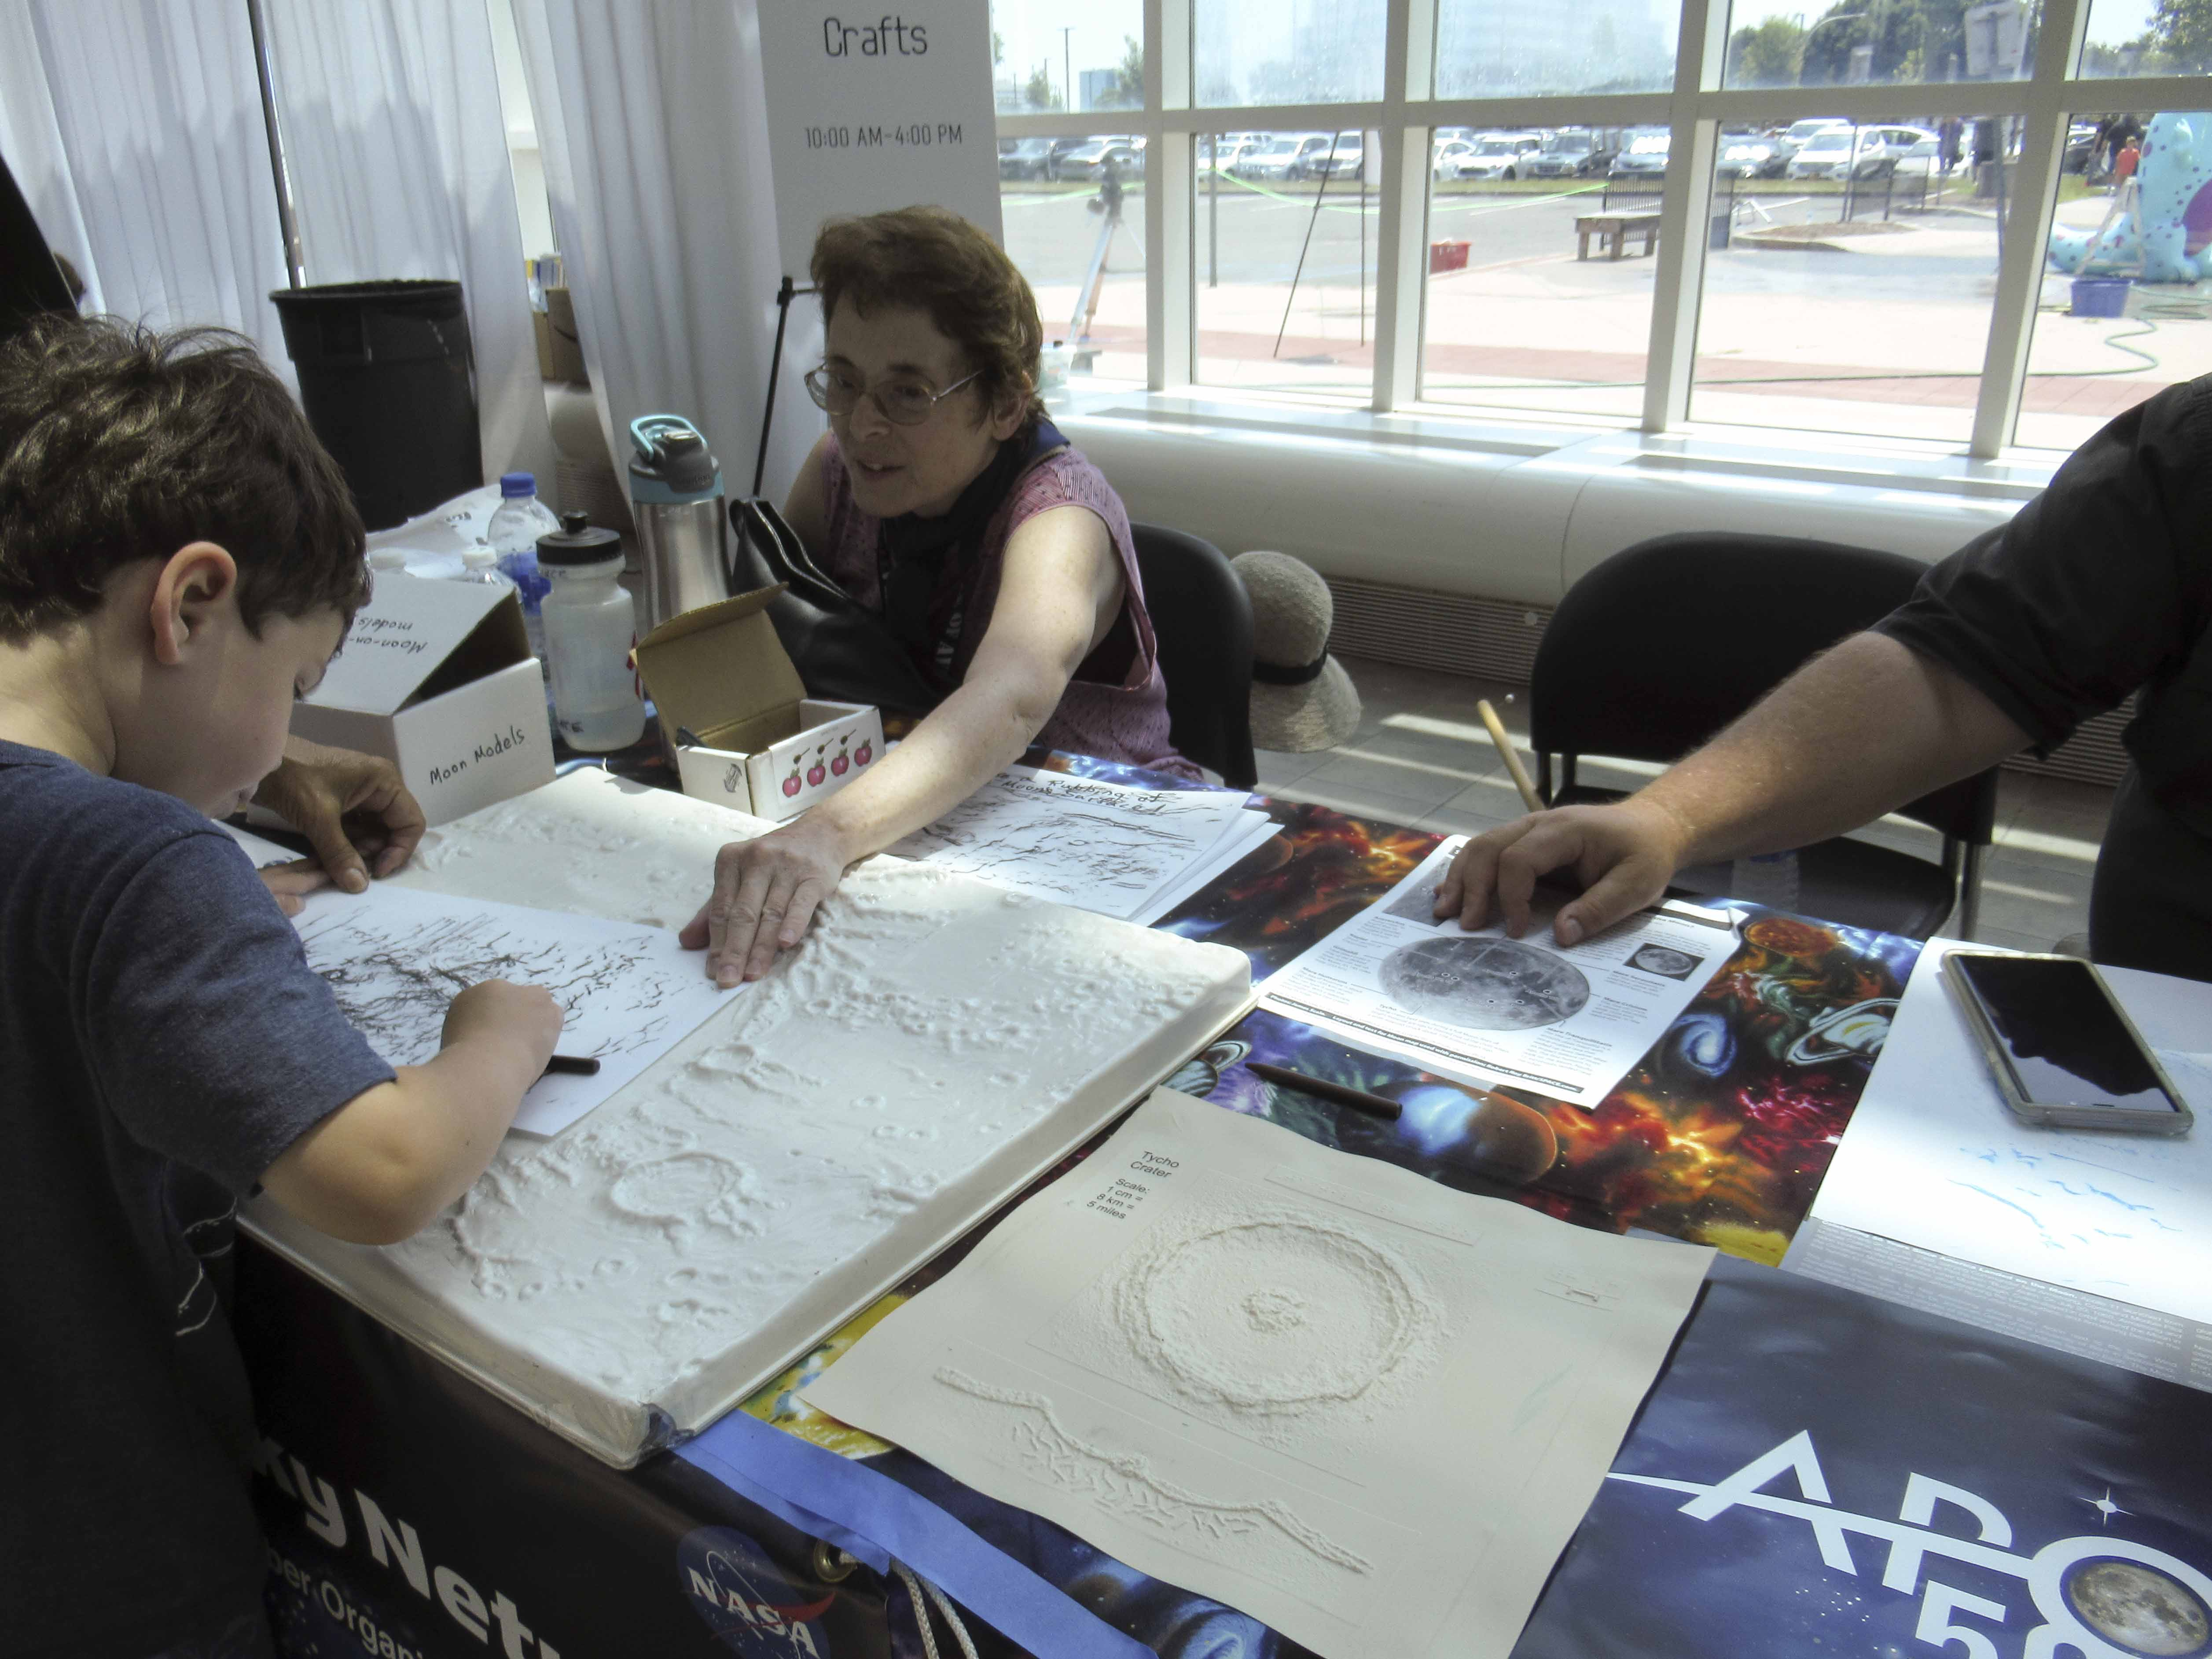 people gather around a table to touch a tactile Moon display